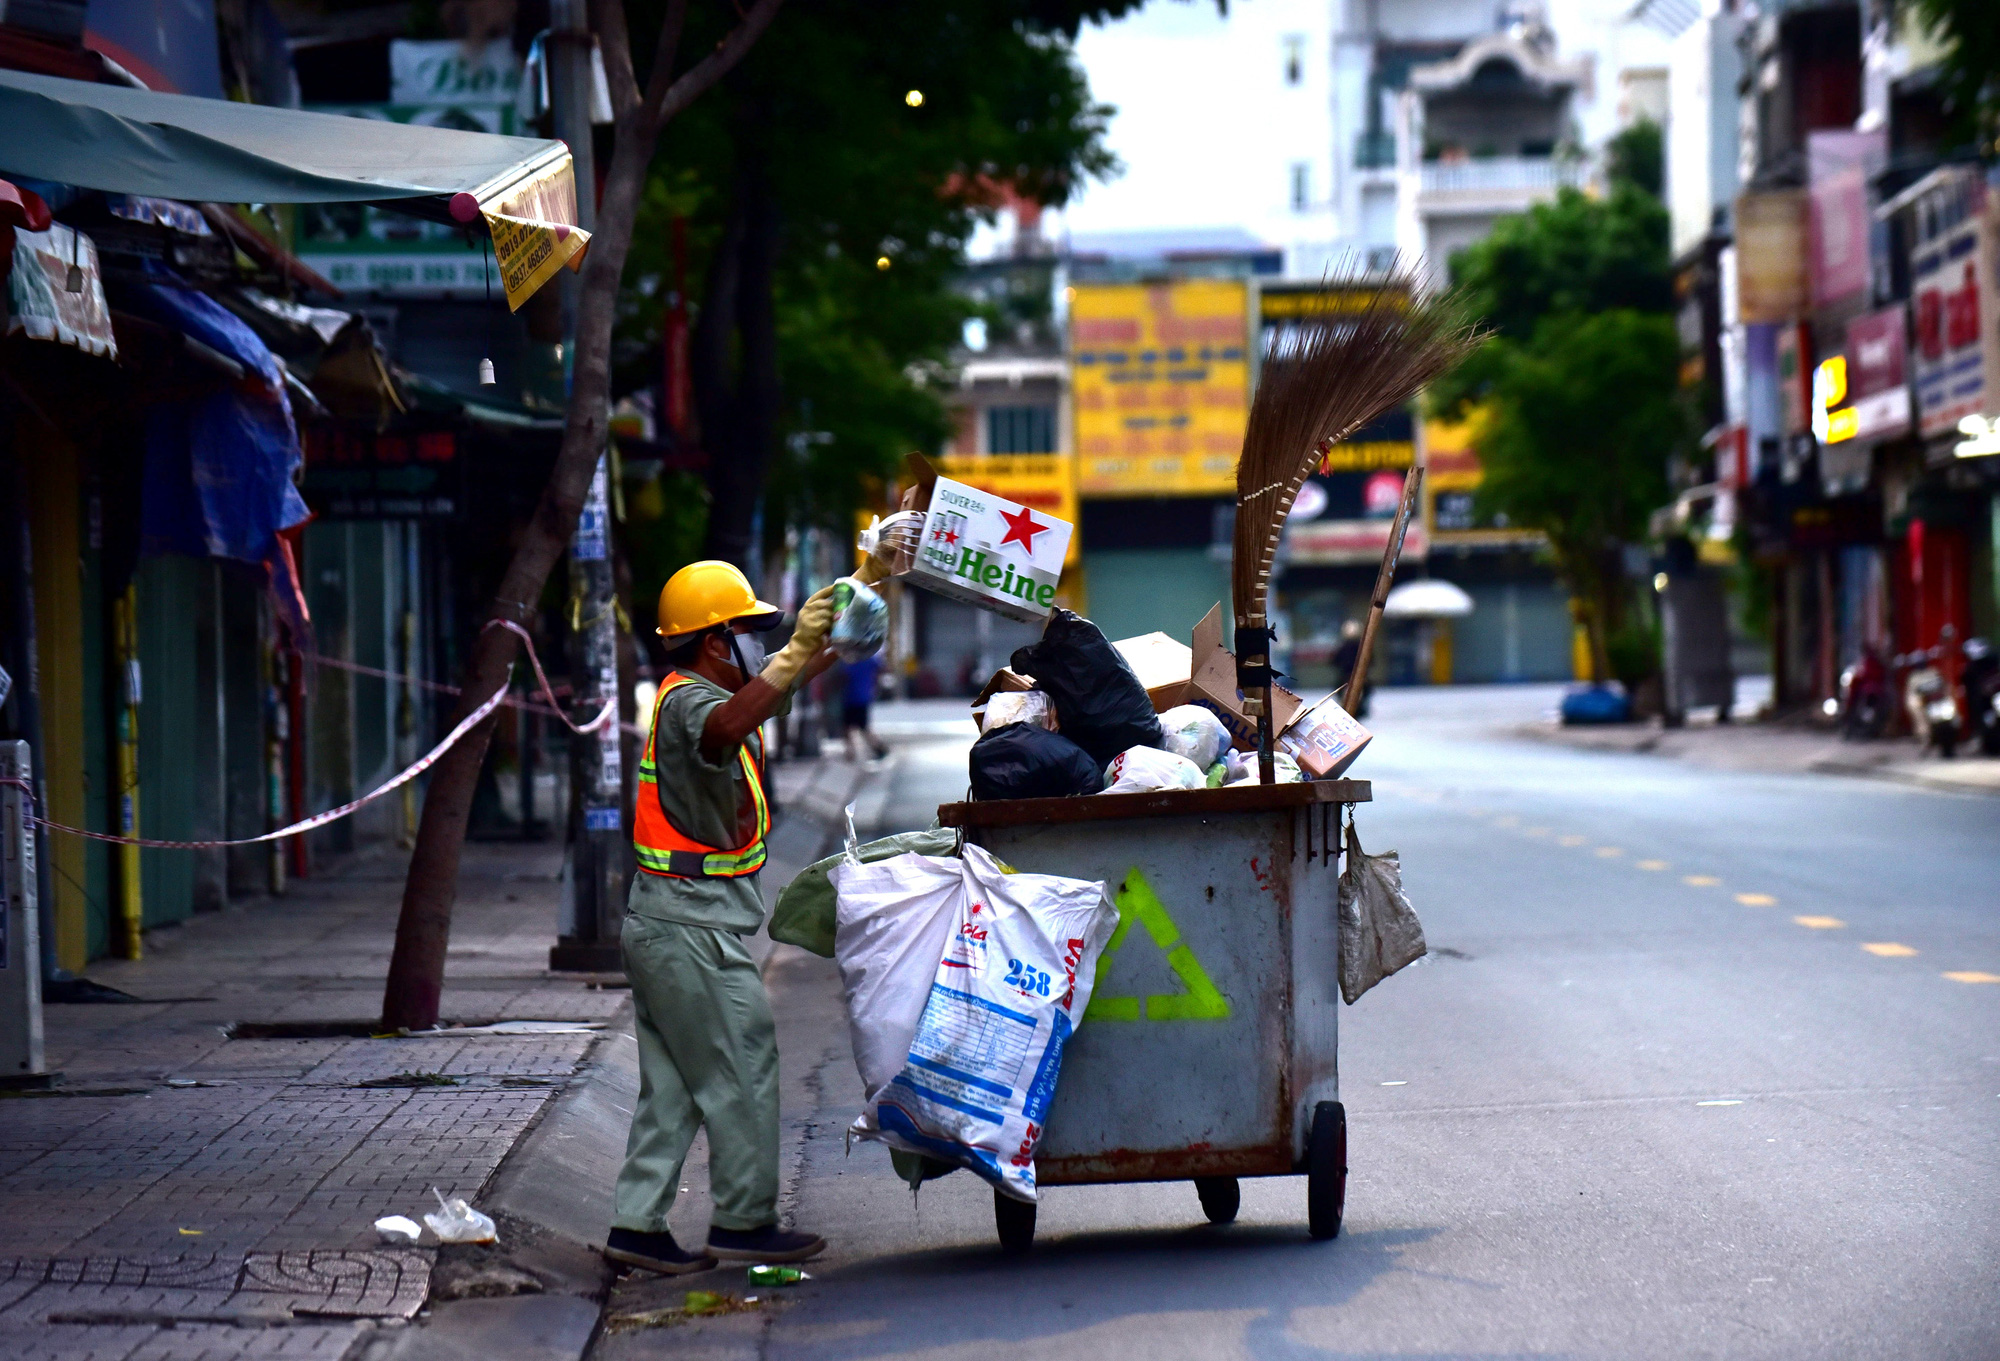 A street sweeper is pictured on a street in Ho Chi Minh City after 6:00 pm on July 26, 2021. Photo: Duyen Phan / Tuoi Tre